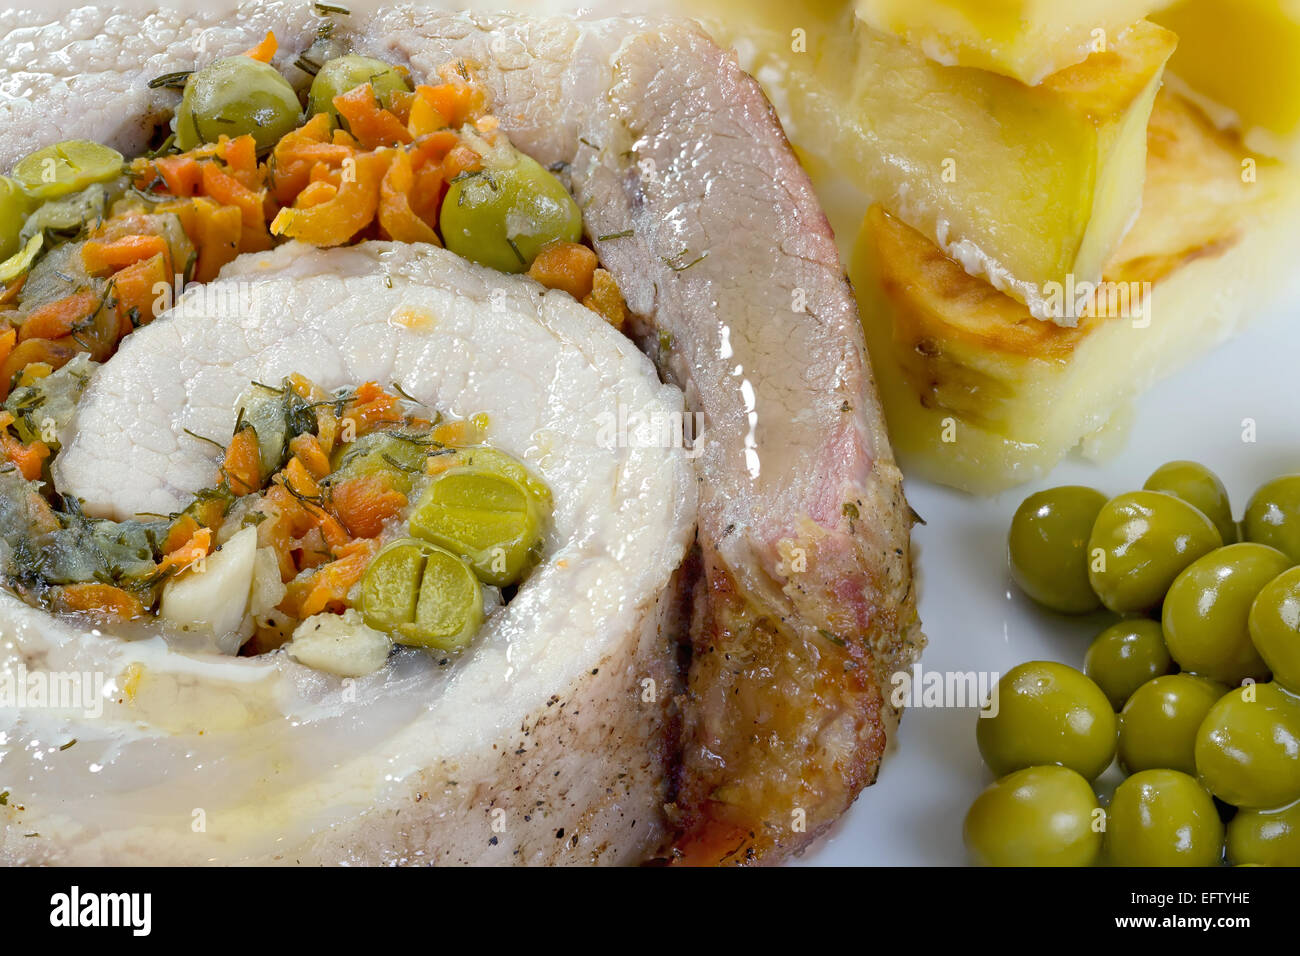 Close-up view of home meatloaf with roasted potatoes and green peas. Stock Photo